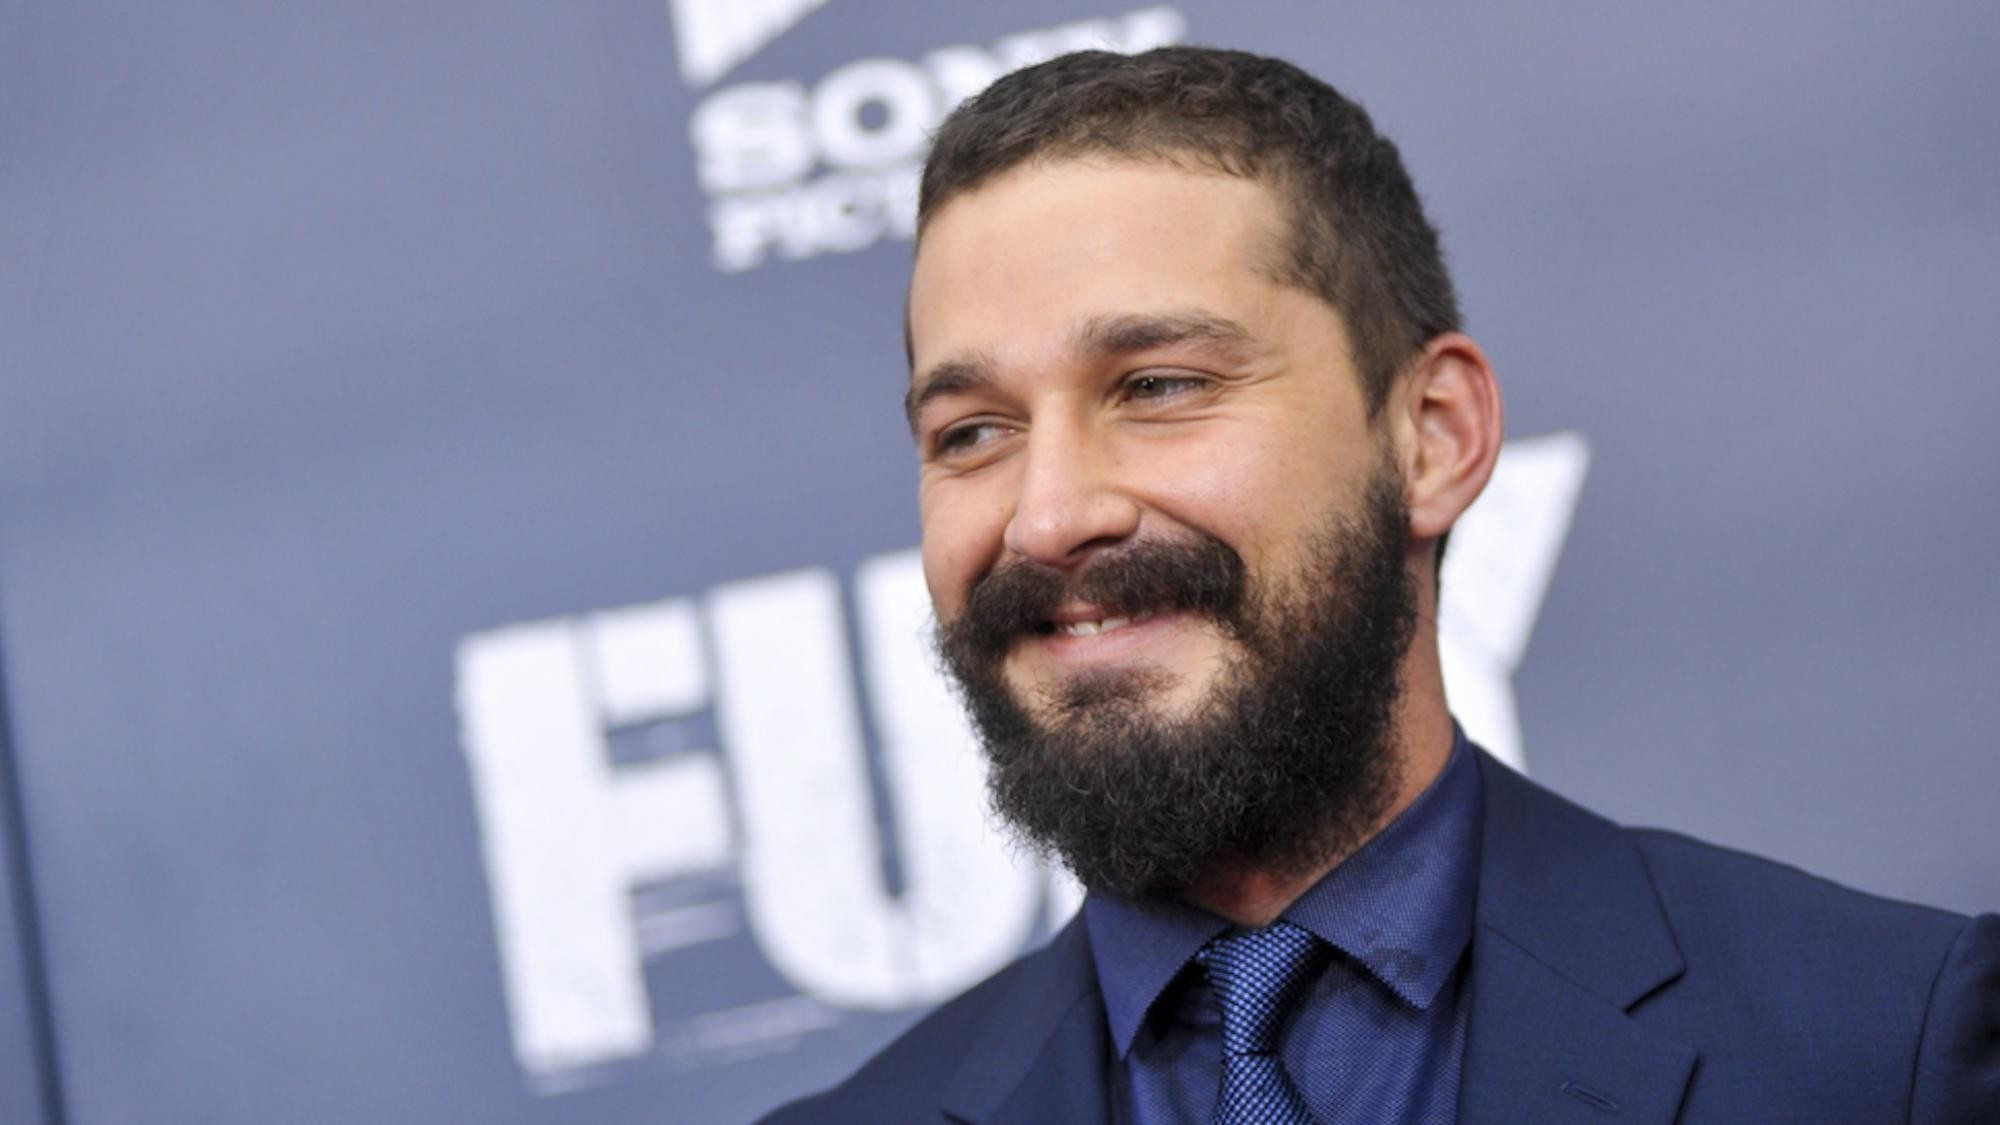 shia labeouf reached out to the guy punched in the face for